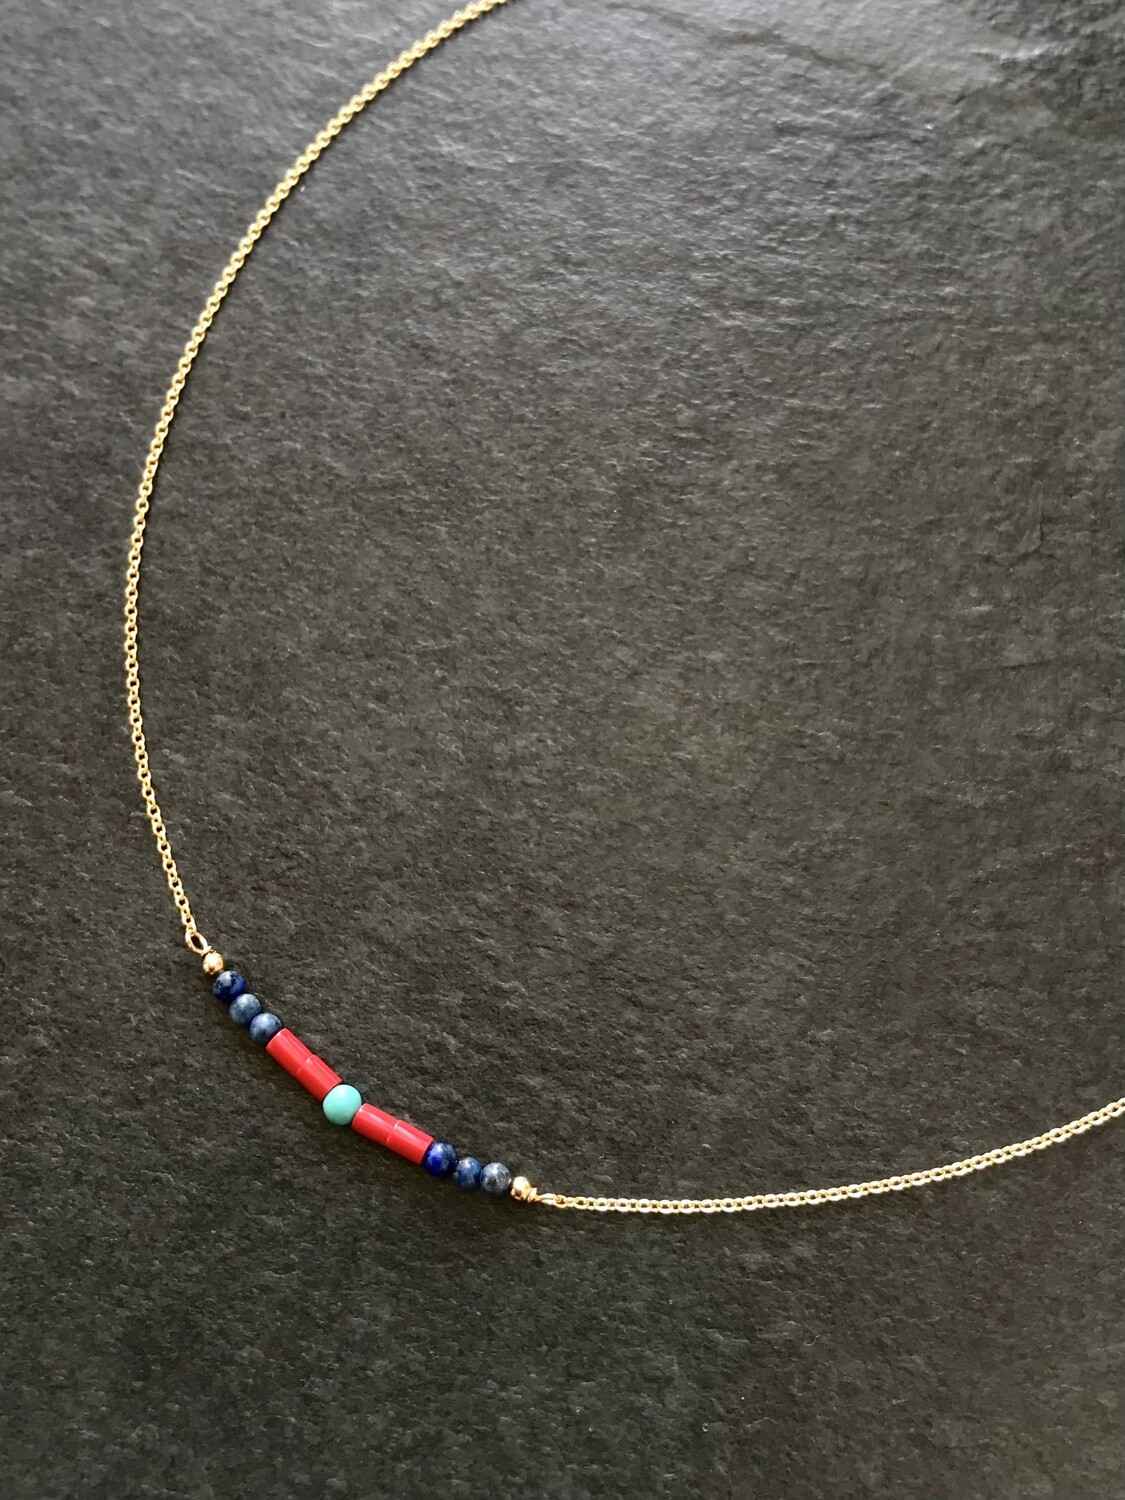 Lapis, Coral & Turquoise Artemis Necklace - GDFDSN2